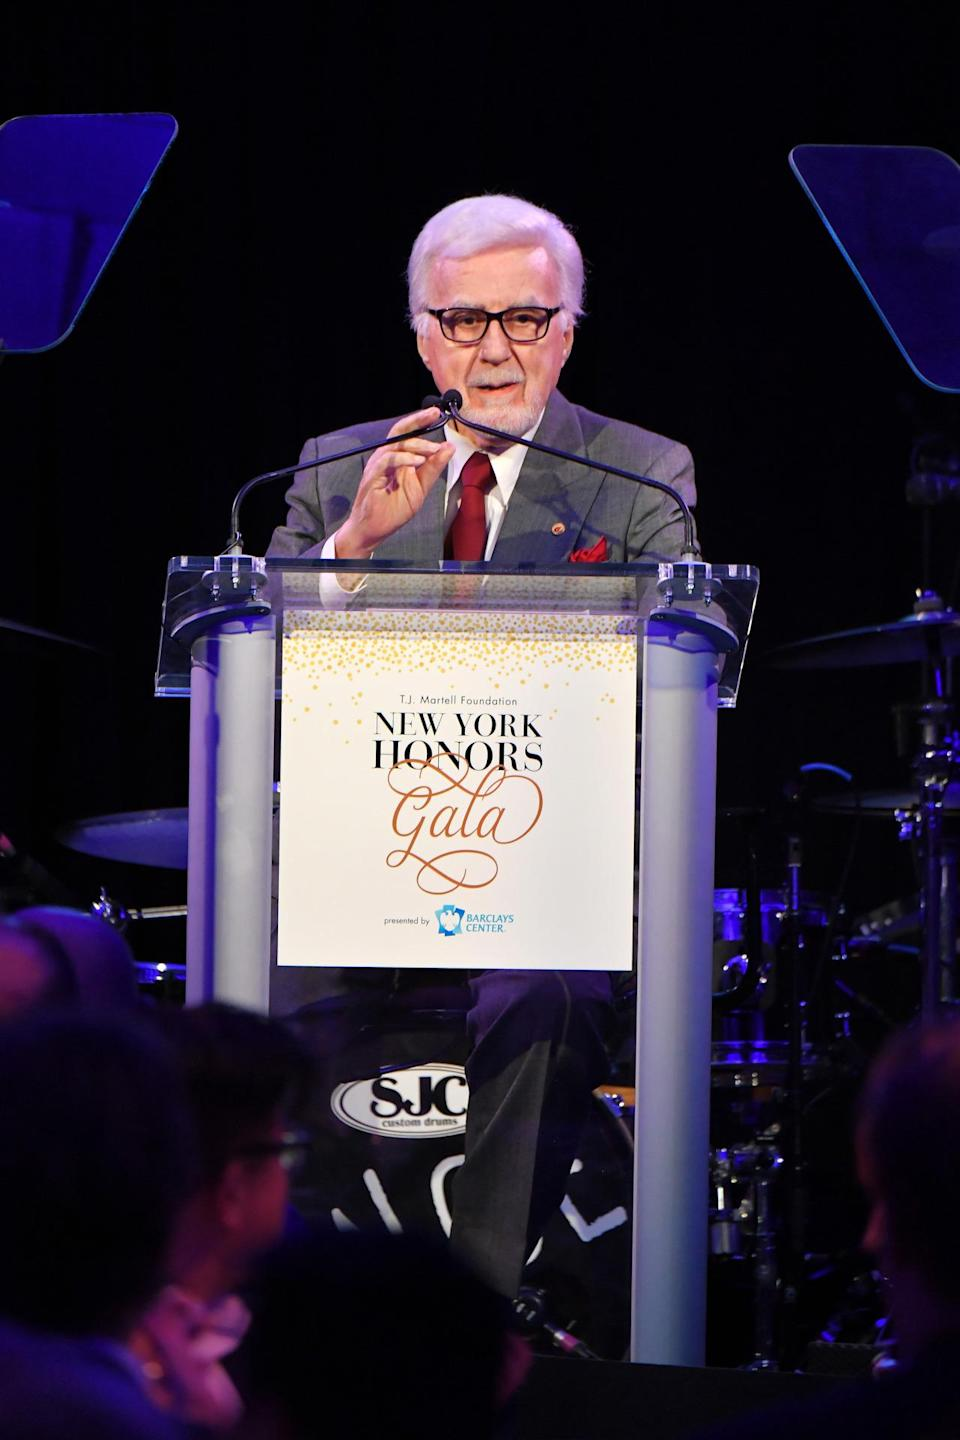 Tony Martell was an American music industry senior executive and philanthropist and the founder of the T.J. Martell Foundation. He died Nov. 27 at age 90. (Photo: Getty Images)